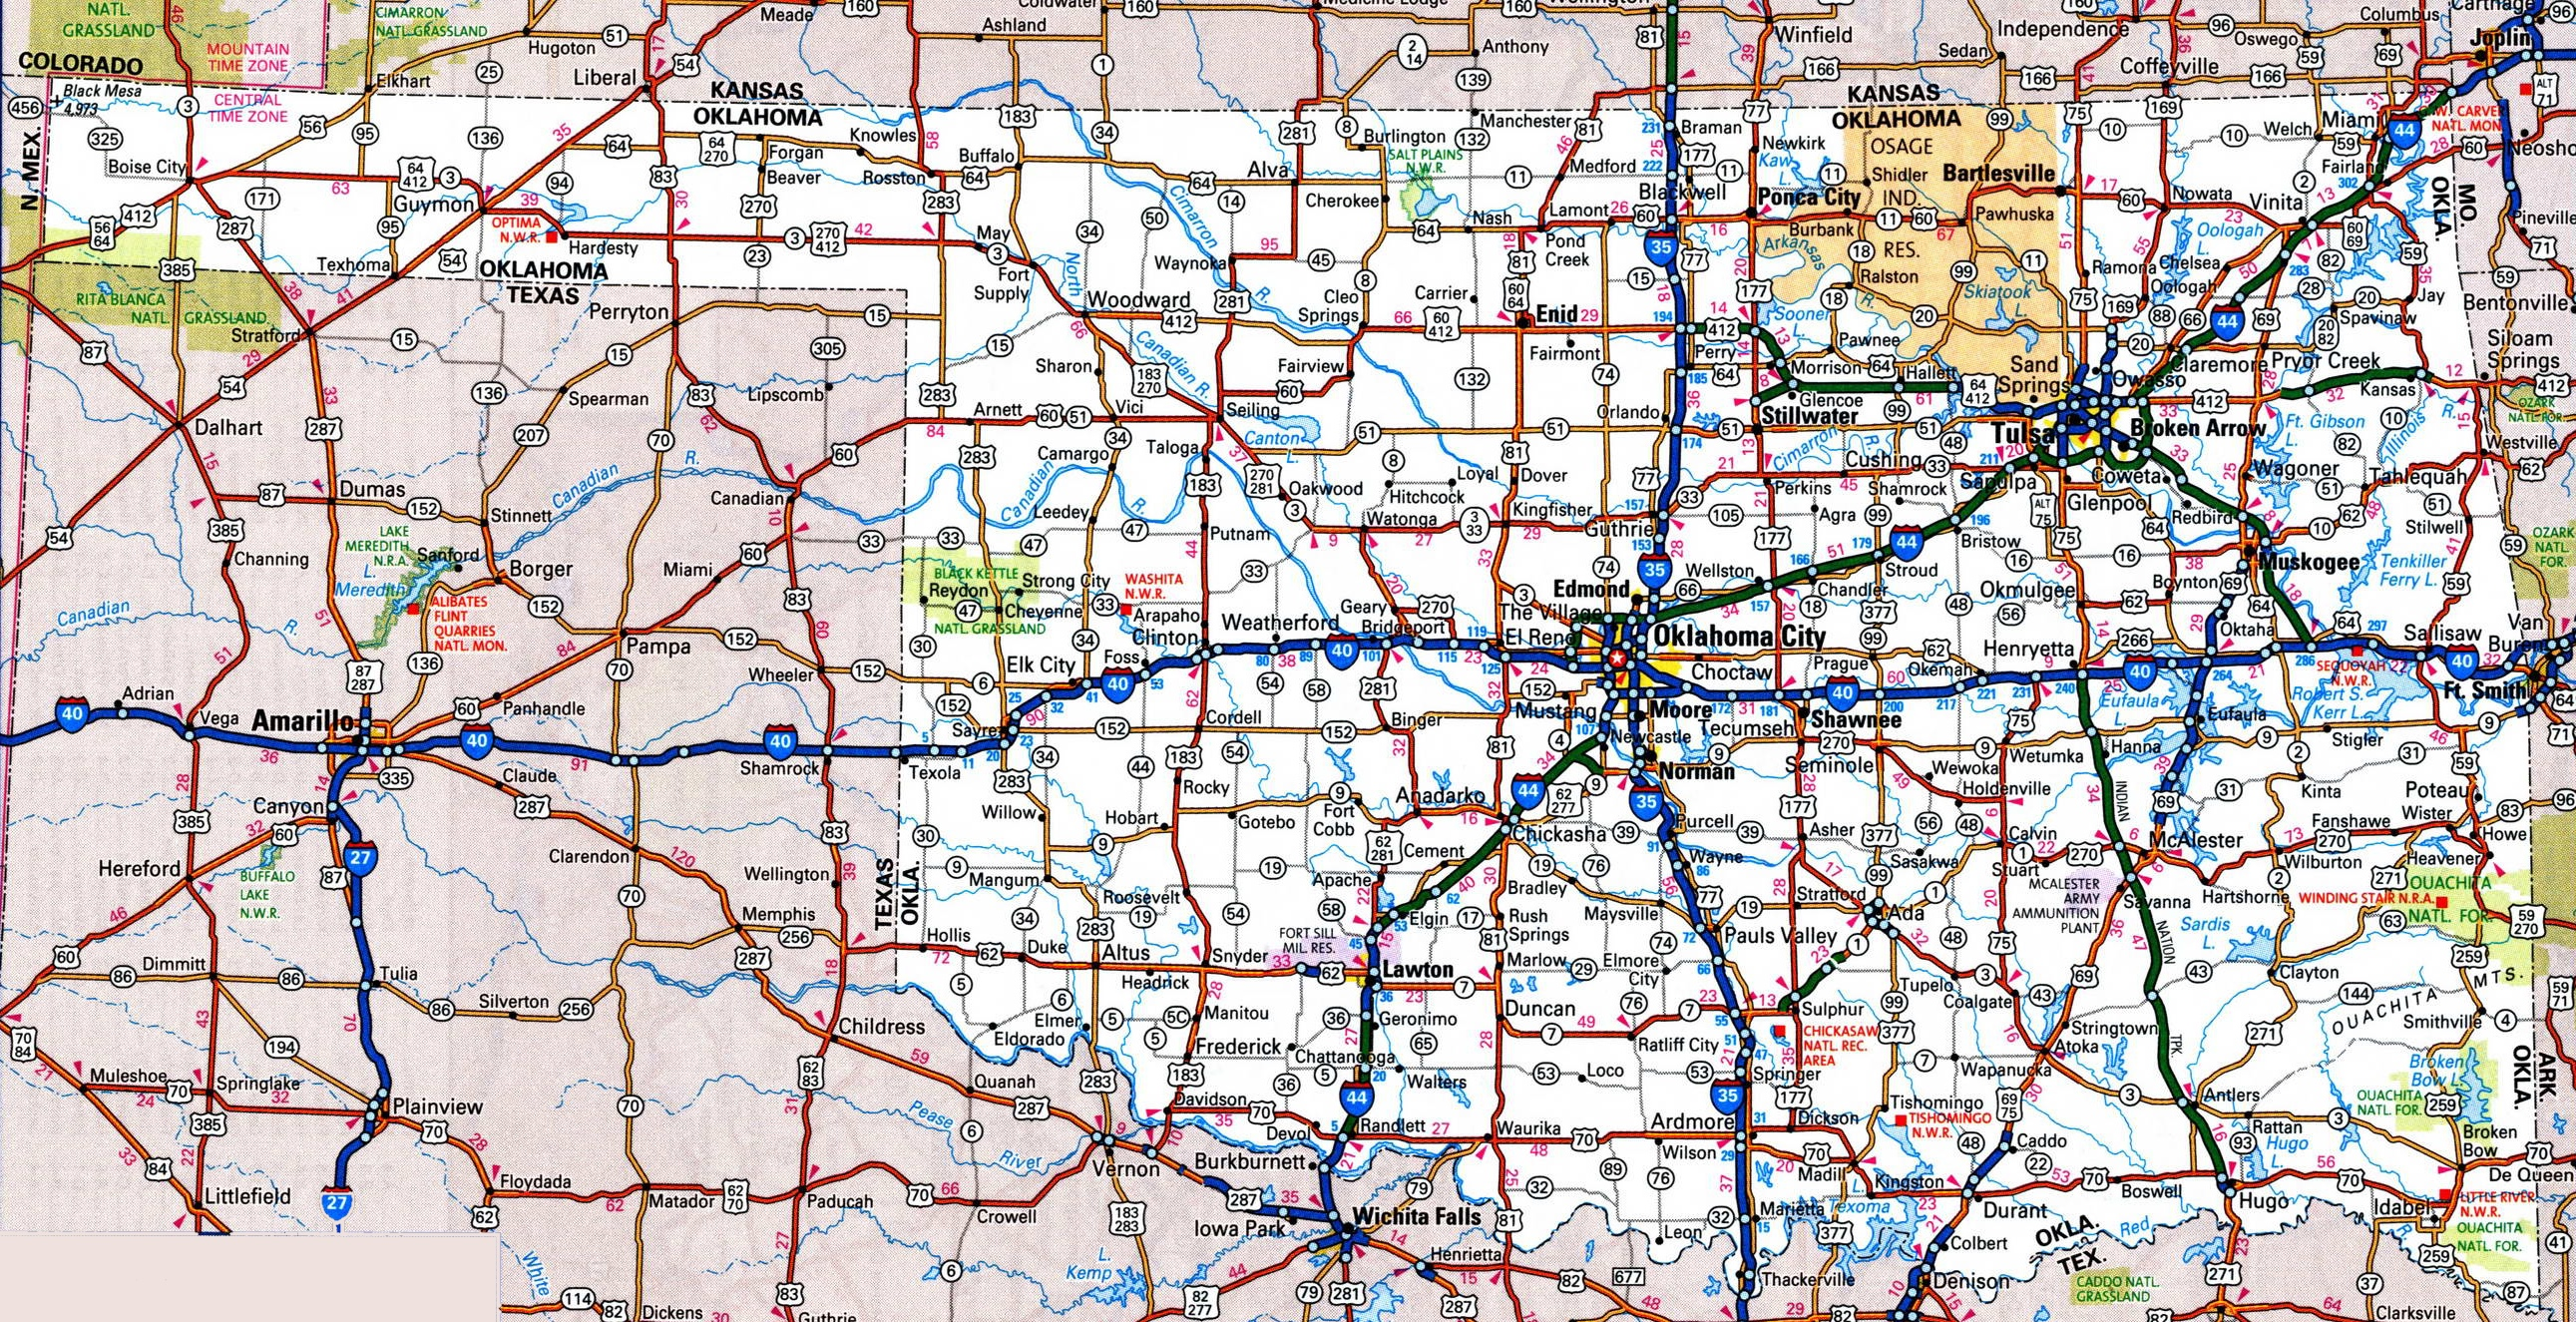 Oklahoma Road Map - Oklahoma highways map